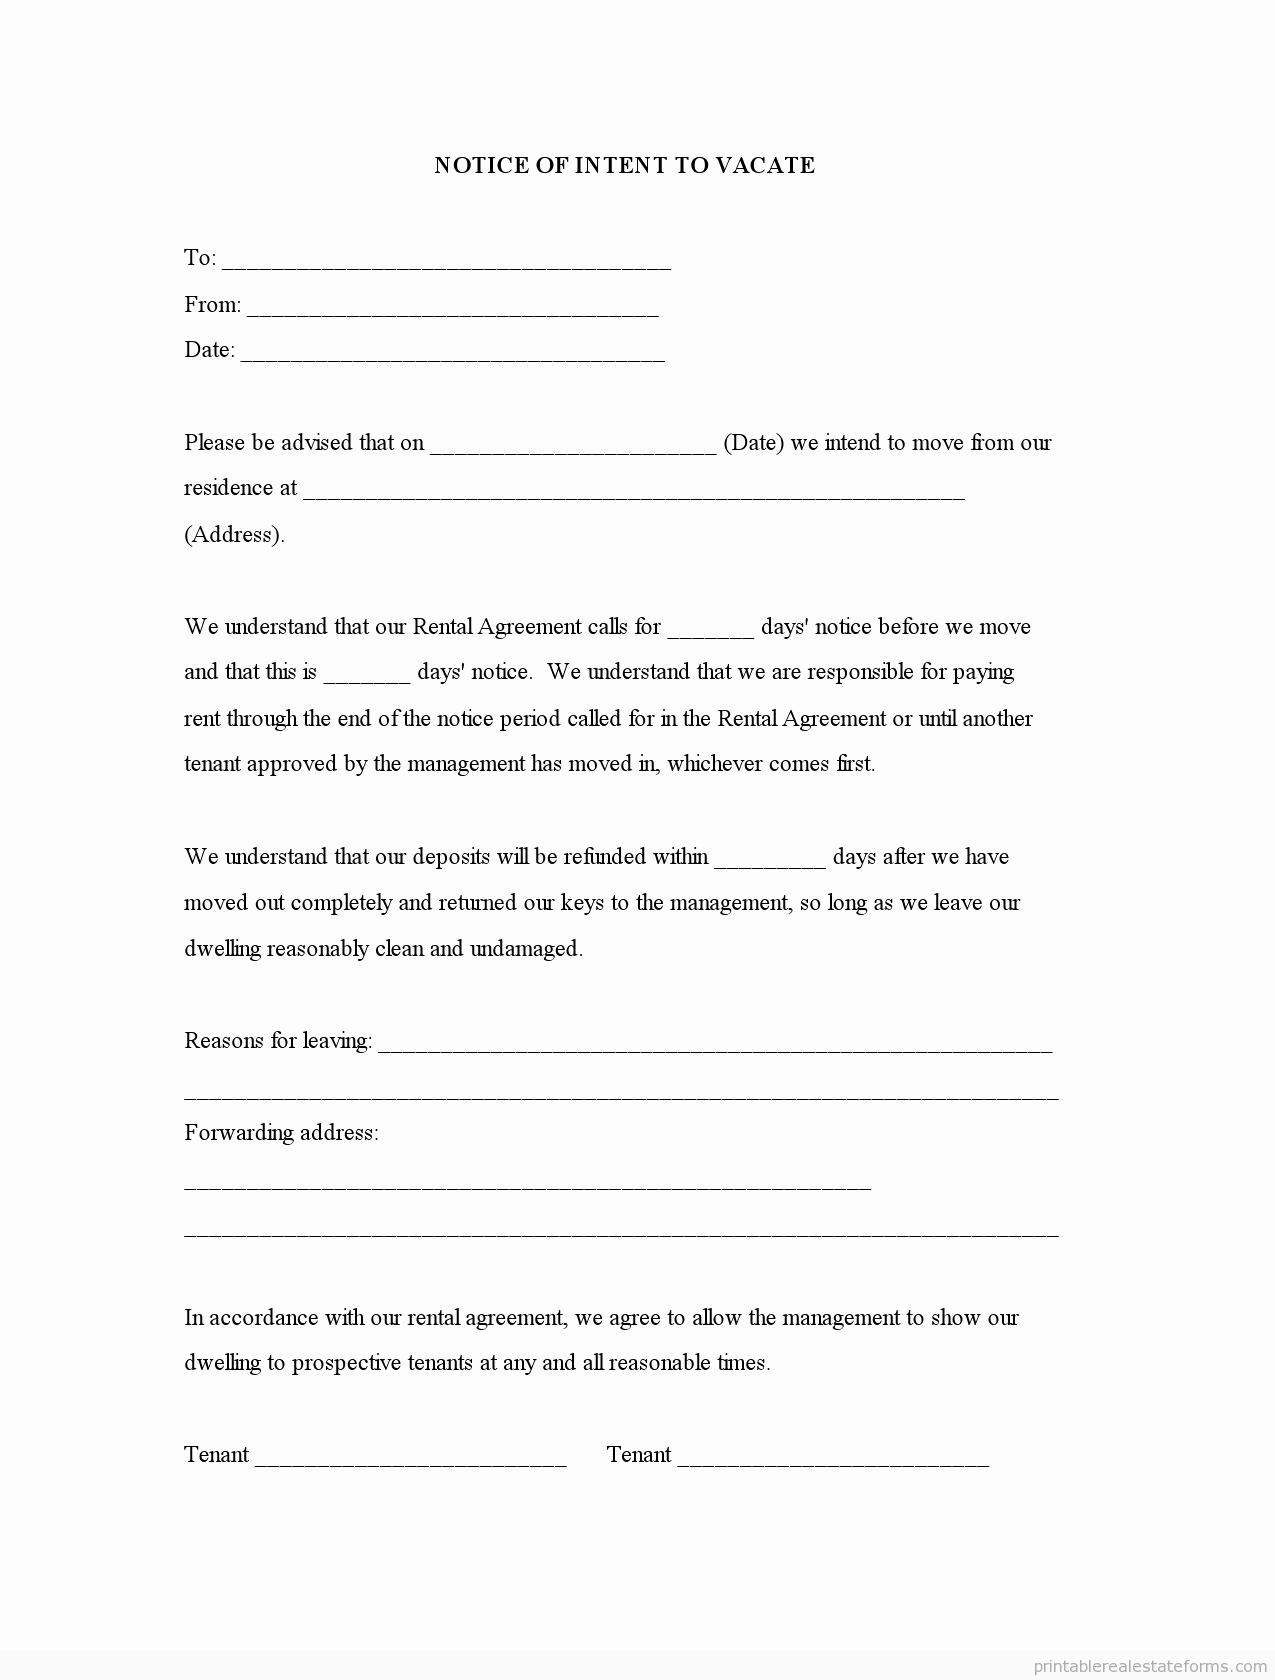 Intent to Vacate Sample Letter Inspirational Sample Printable Notice Of Intent to Vacate form